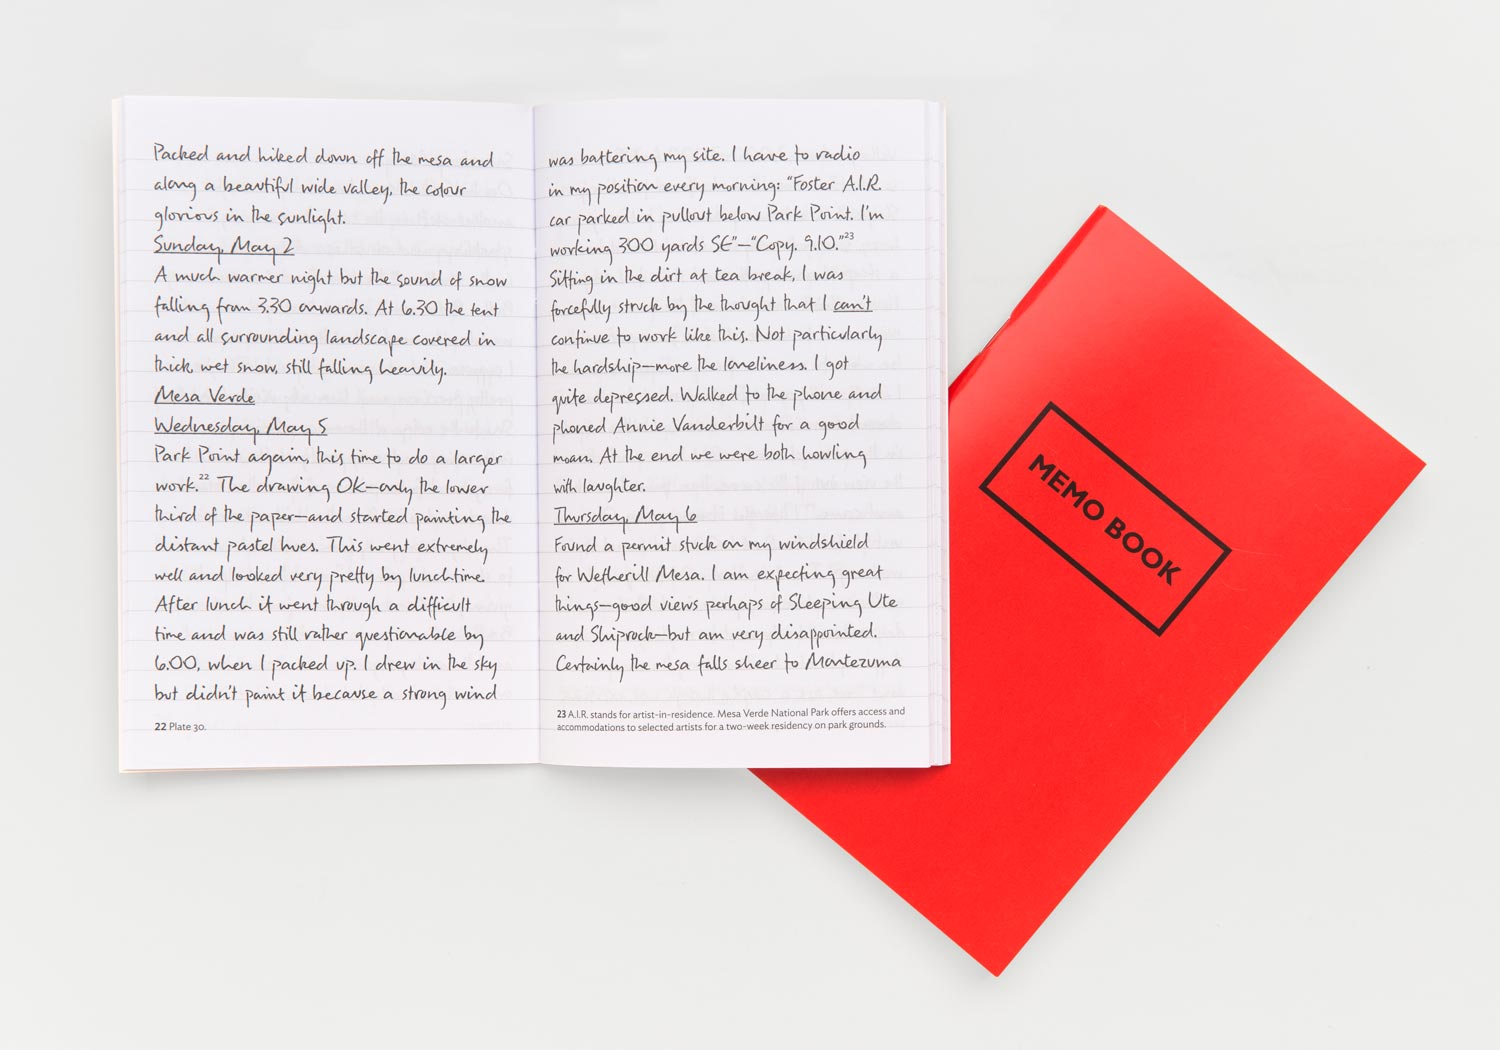 A recreation of Tony's journal with excerpts from his  Sacred Places  entries. A blank replica of this journal is also included for your own note taking. 3.875 x 6.25 in. 80 pages each.